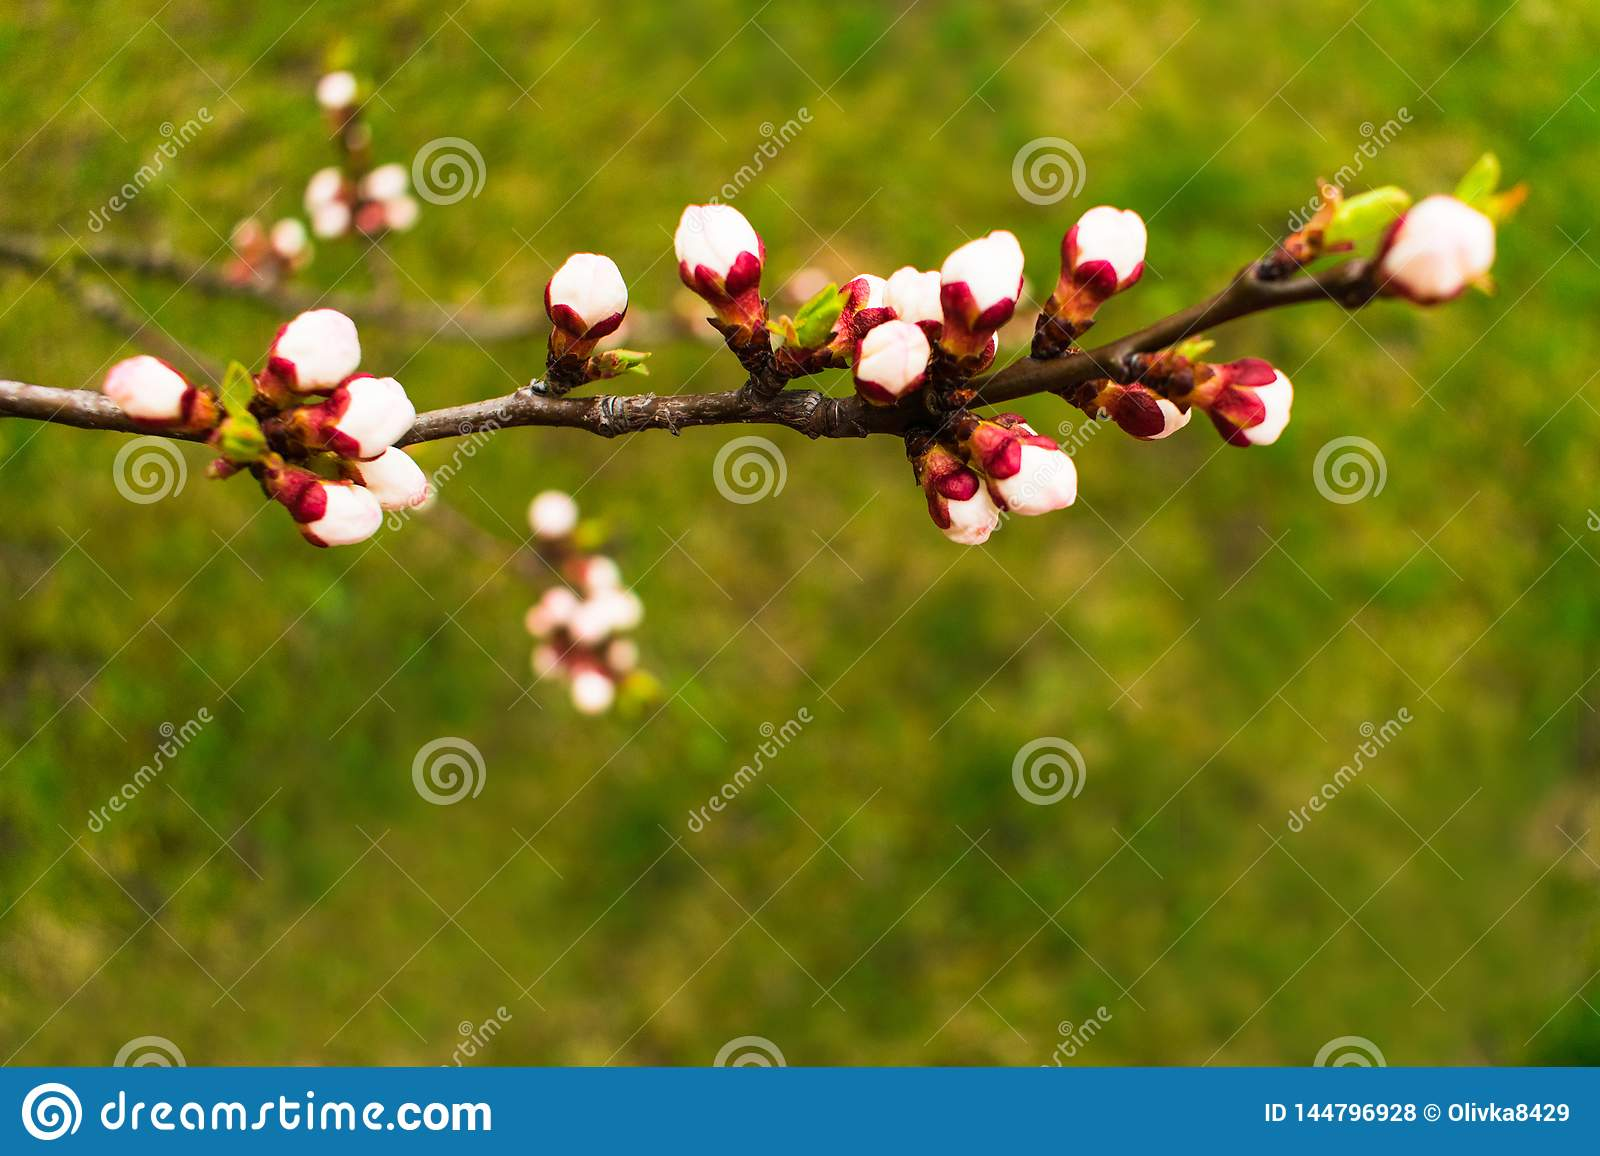 branch of blossoming apricots on grass background